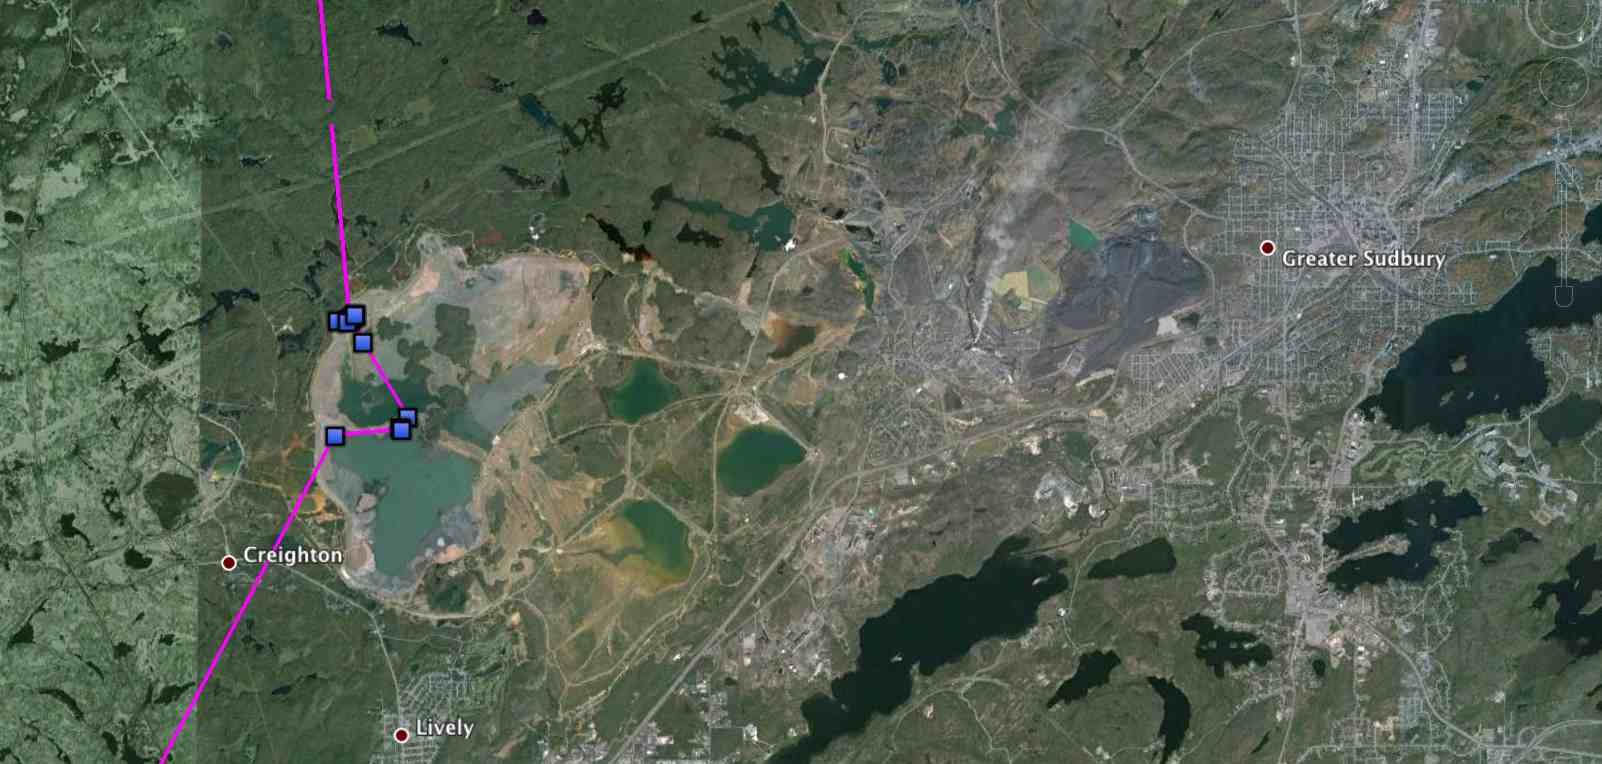 Millcreek's quick visit to the mine tailings ponds in Sudbury, ON -- probably just as well he didn't linger. (The exhaust plume from the town's infamous Inco Superstack, the tallest chimney in the western hemisphere at the world's largest nickel smelter, is visible near the middle of the image.) (©Project SNOWstorm and Google Earth)